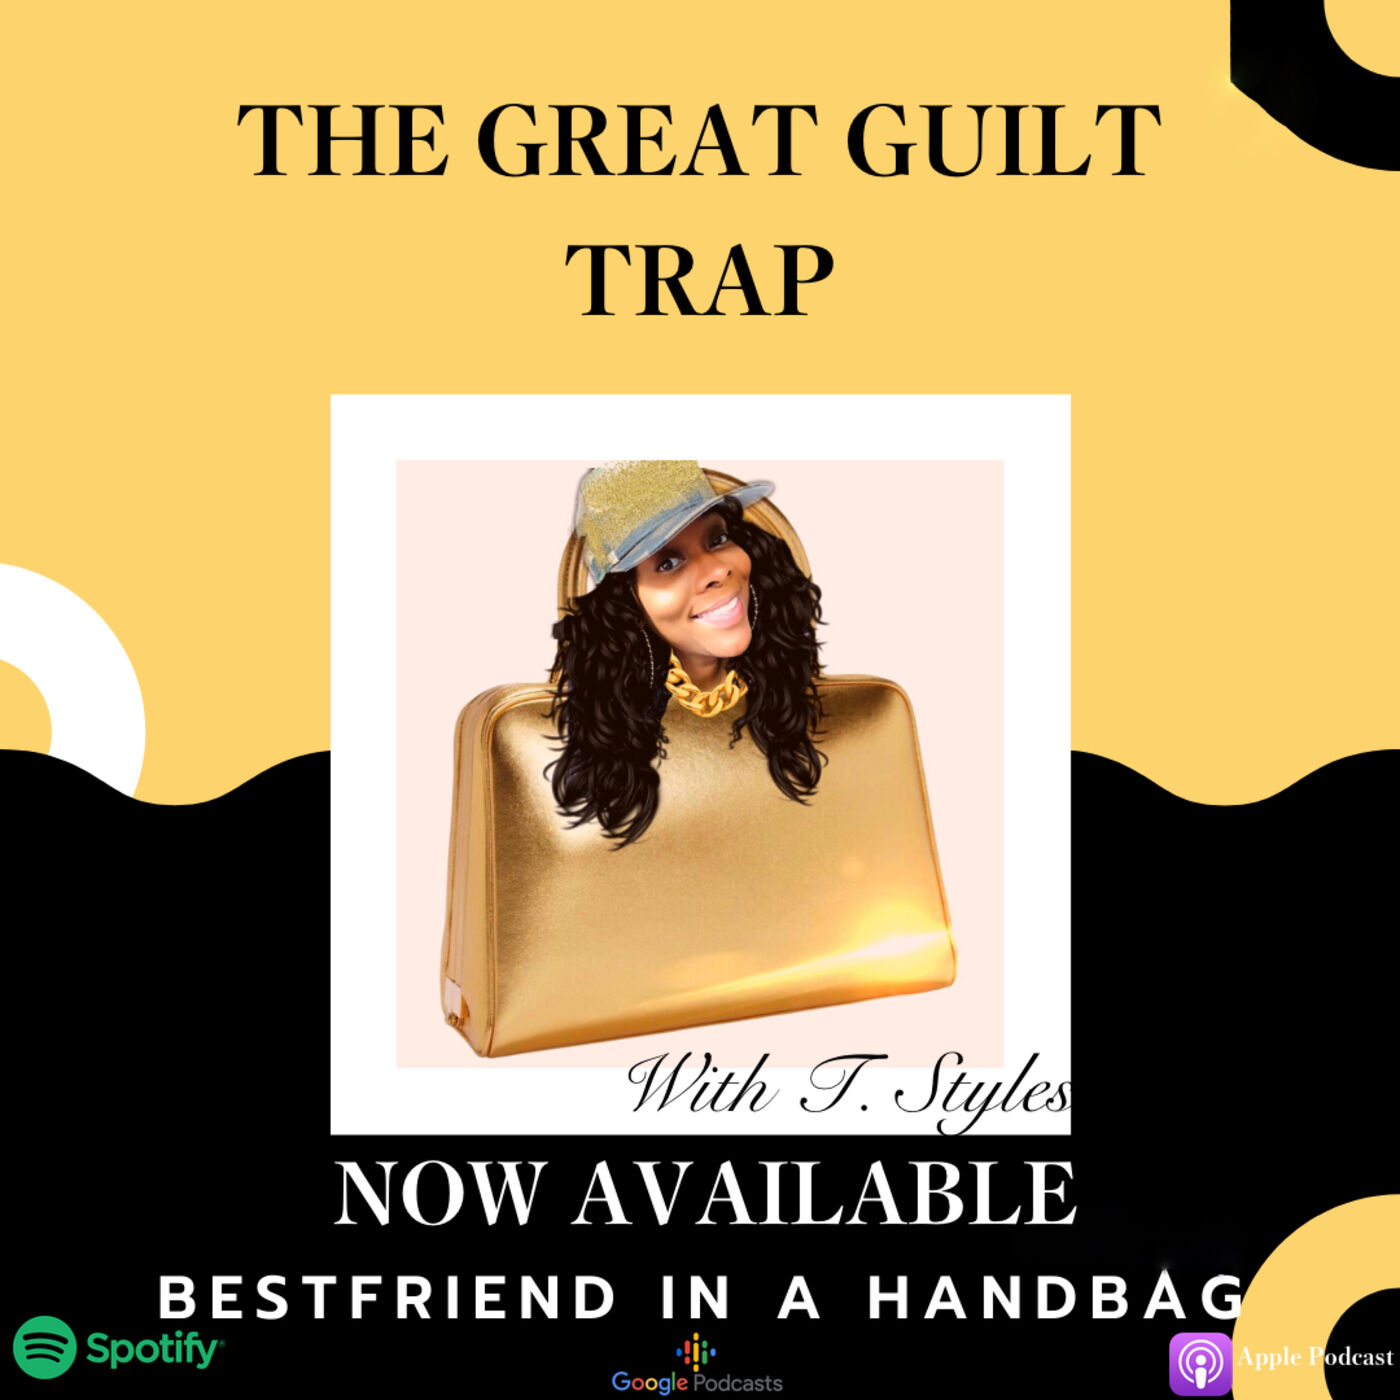 The Great Guilt Trap